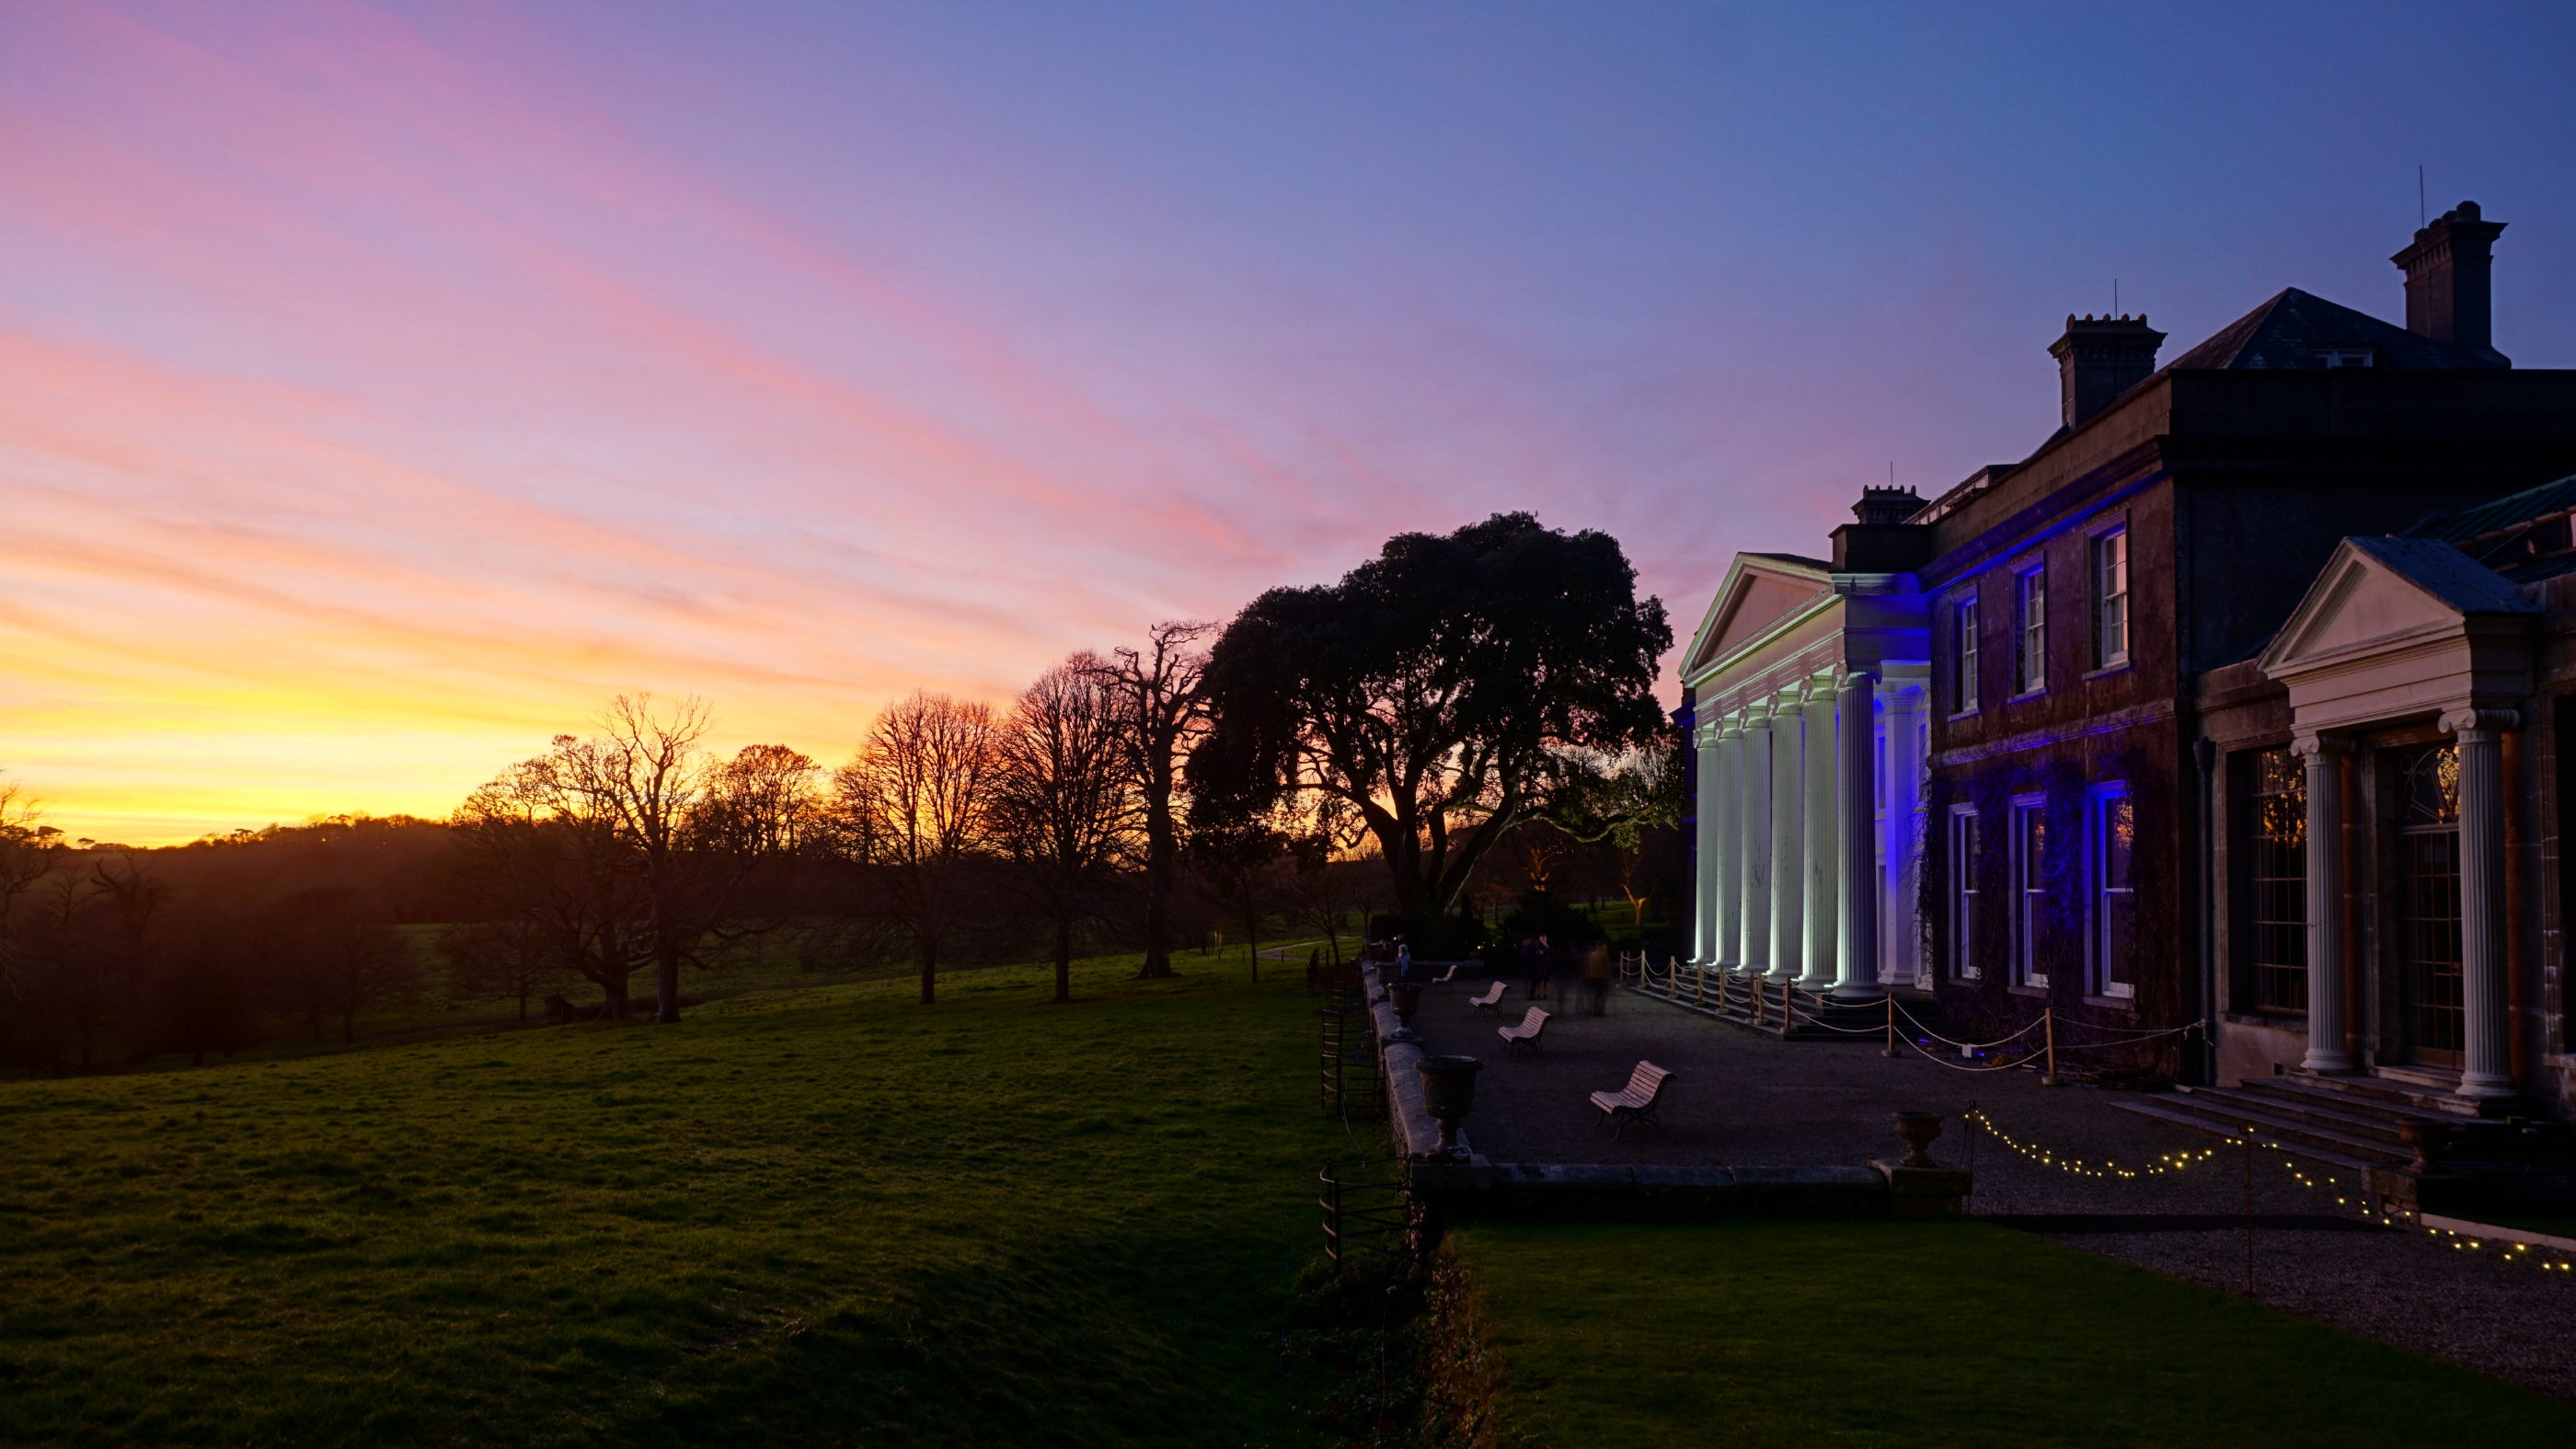 The sun sets on the illuminated Trelissick house at Christmas